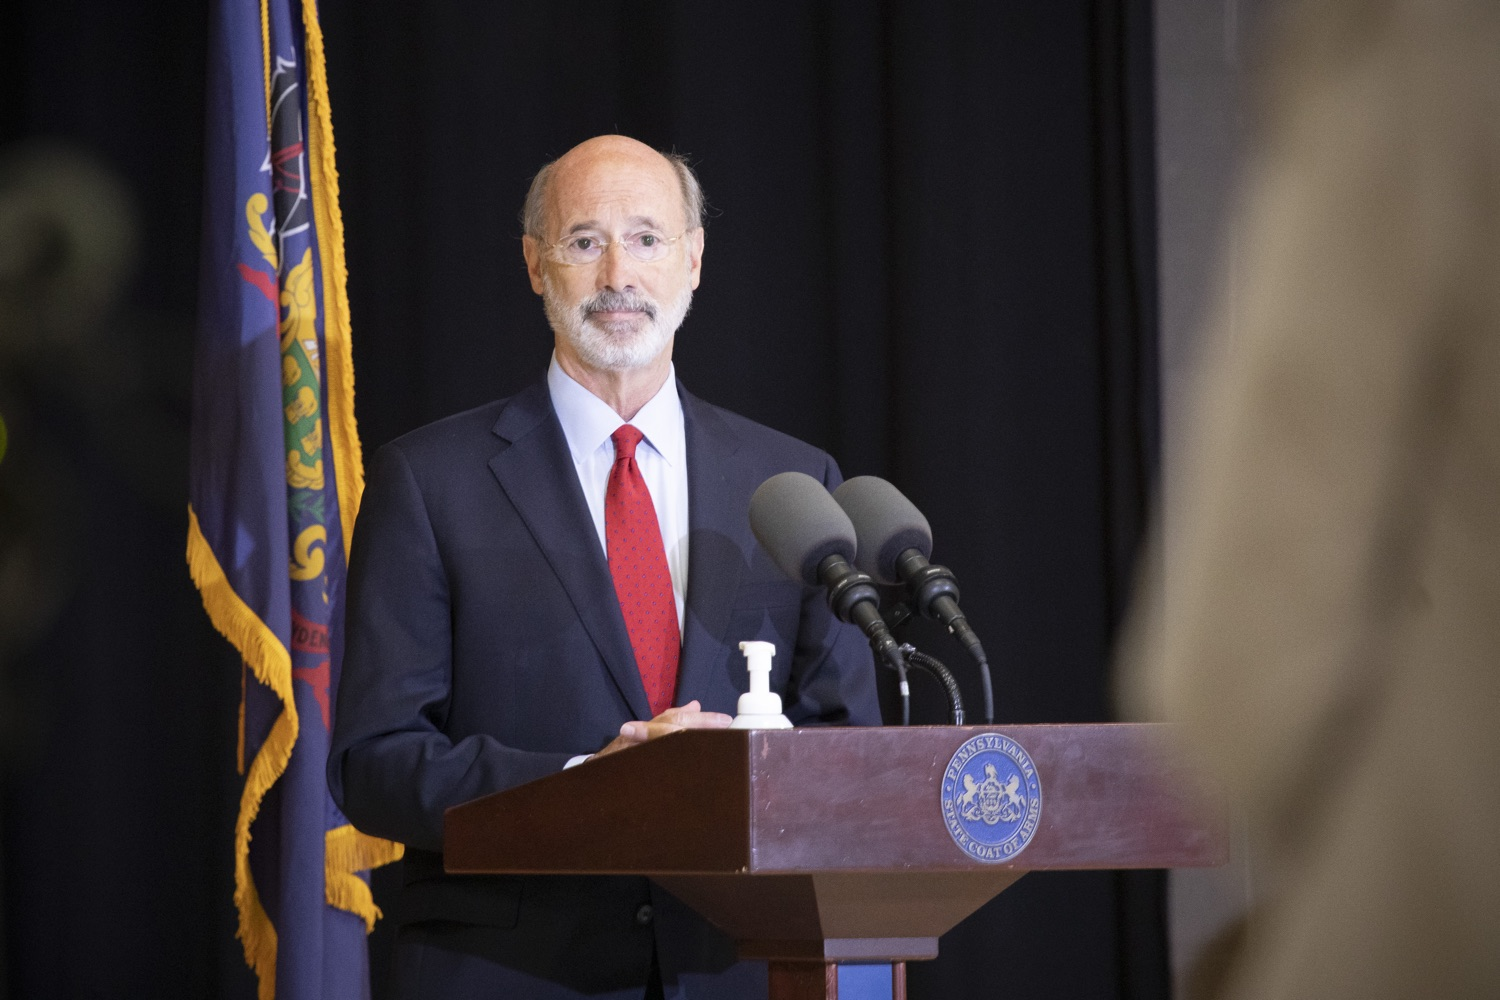 "<a href=""https://filesource.wostreaming.net/commonwealthofpa/photo/18310_gov_adult_use_cannabis_dz_017.jpg"" target=""_blank"">⇣ Download Photo<br></a>Governor Tom Wolf speaks to the press.Governor Tom Wolf visited The Mountain Center in Tobyhanna, Monroe County today to talk about the economic growth potential and restorative justice benefits of legalizing adult-use cannabis, something the state General Assembly has not yet done despite multiple requests from the governor and Lieutenant Governor John Fetterman to take up legislation this fall.  Tobyhanna, PA  October 13, 2020"